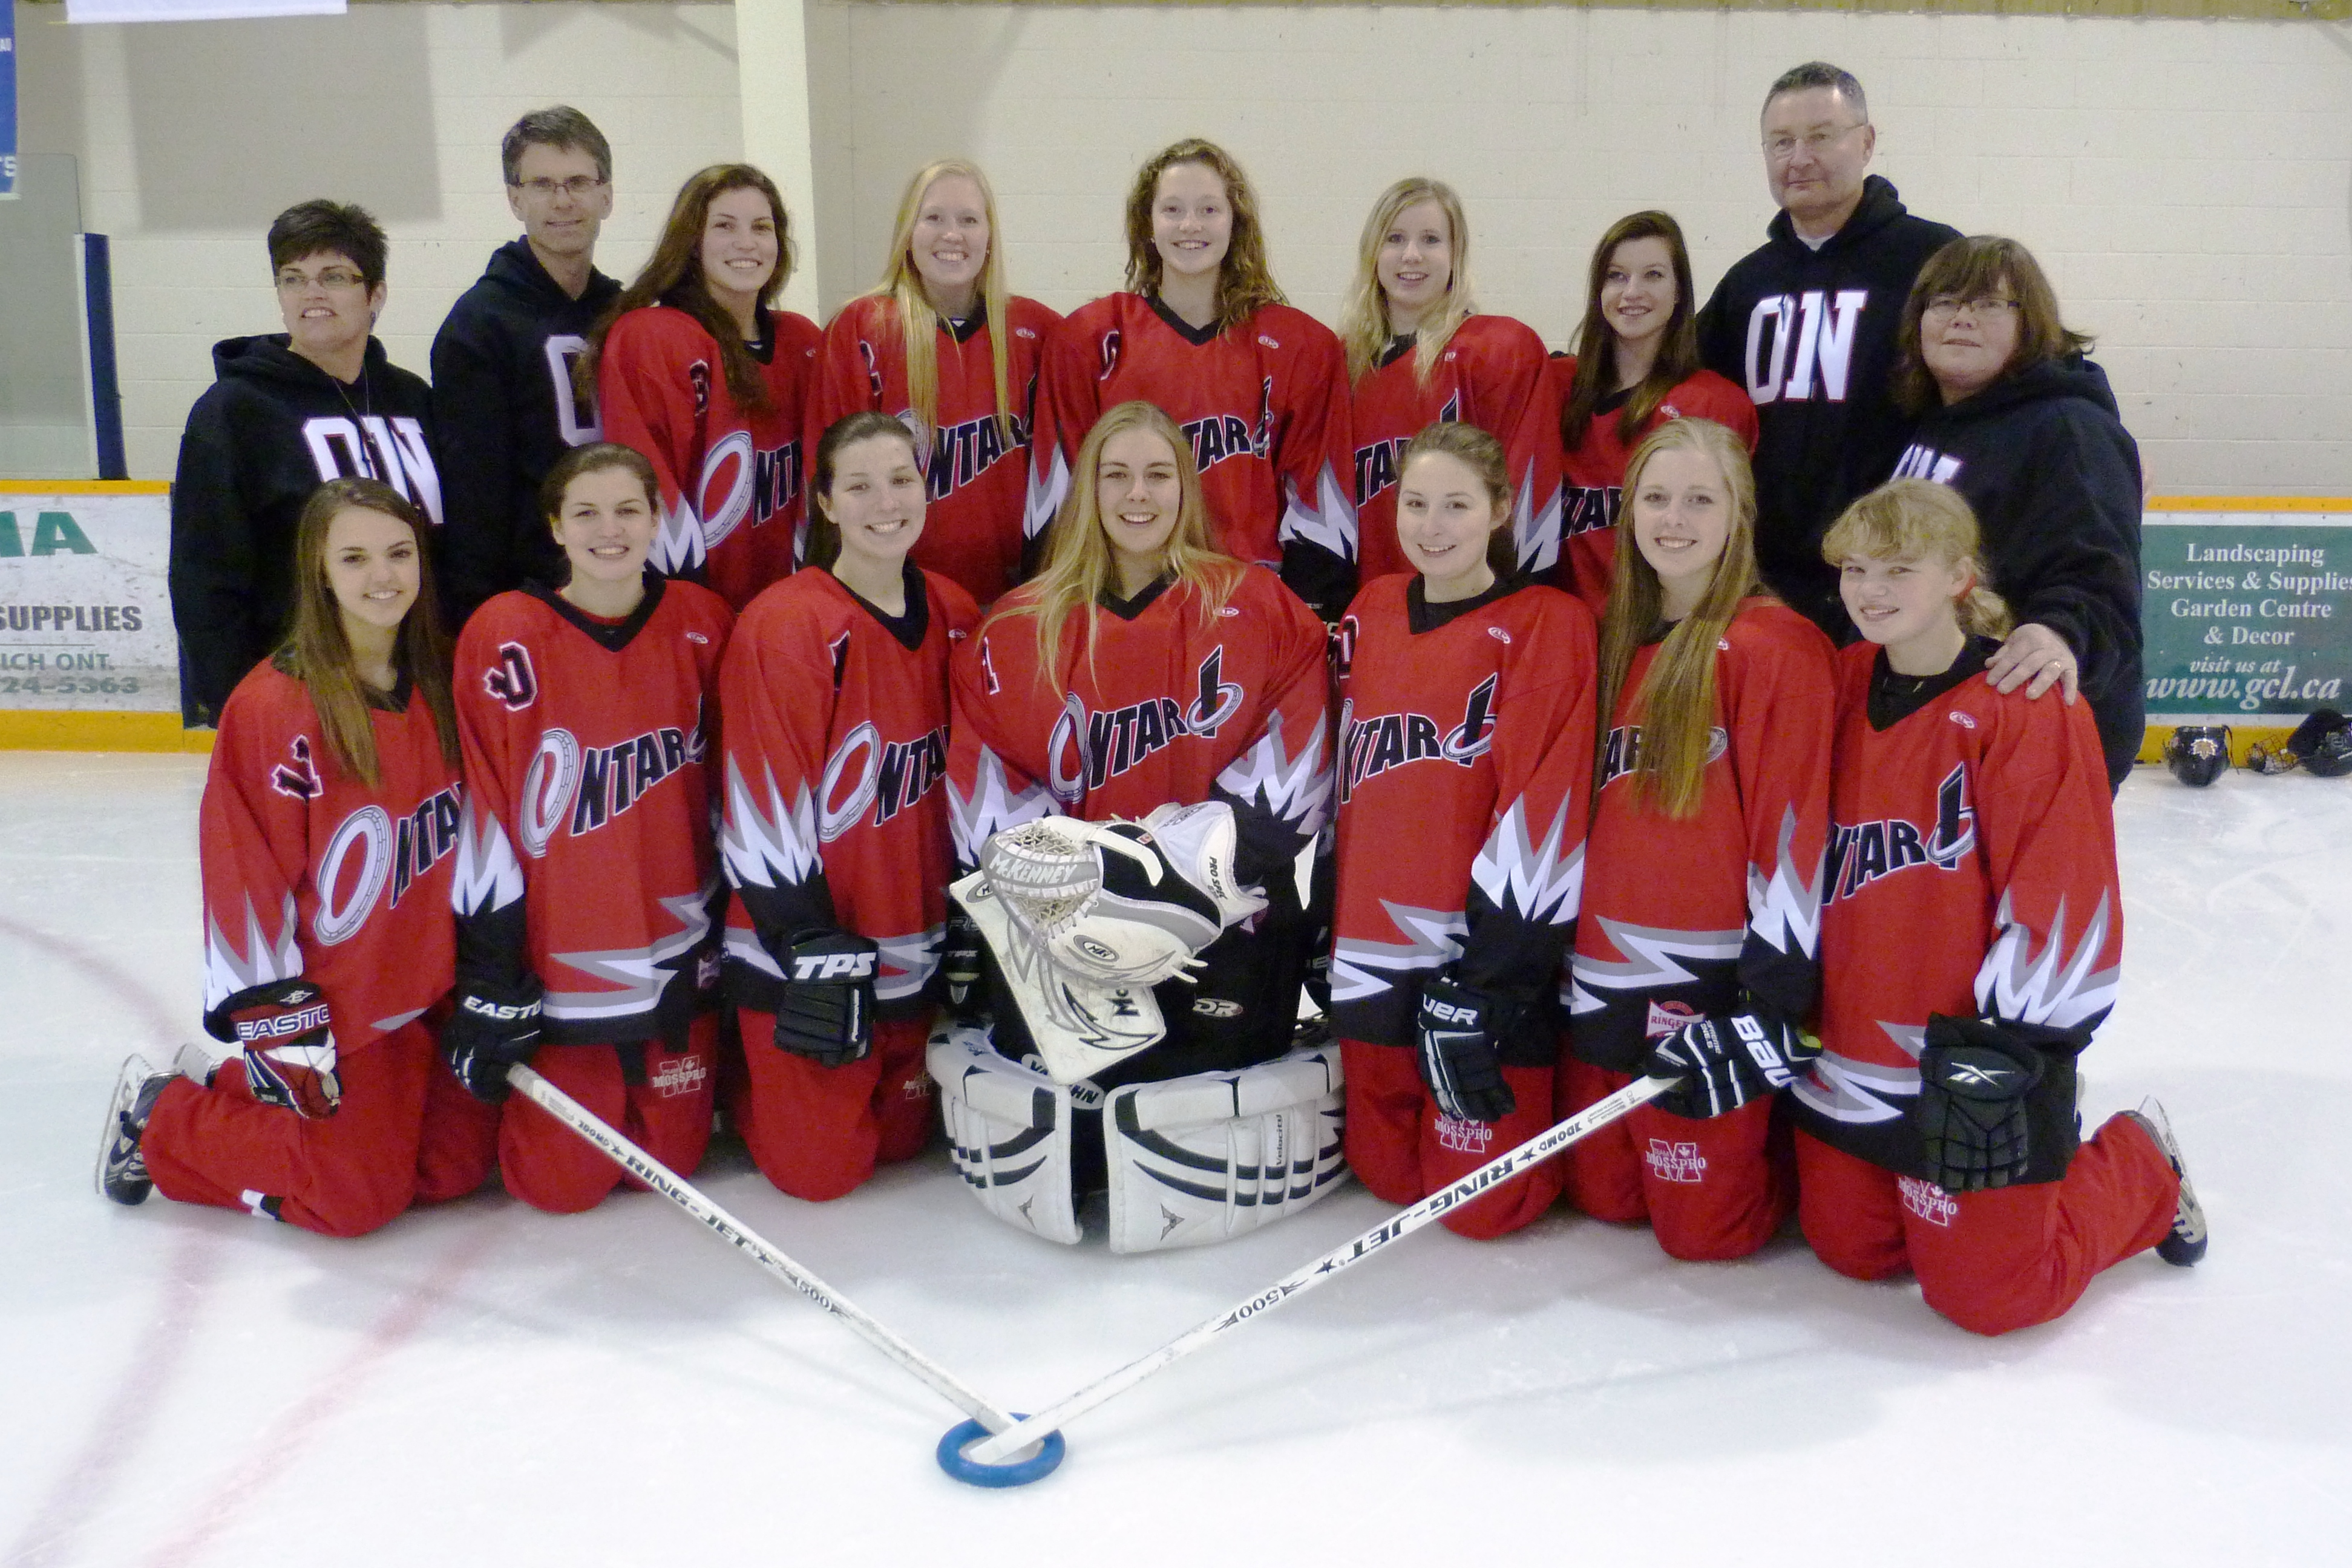 Local Ringette Team Going Strong At Eastern Championships